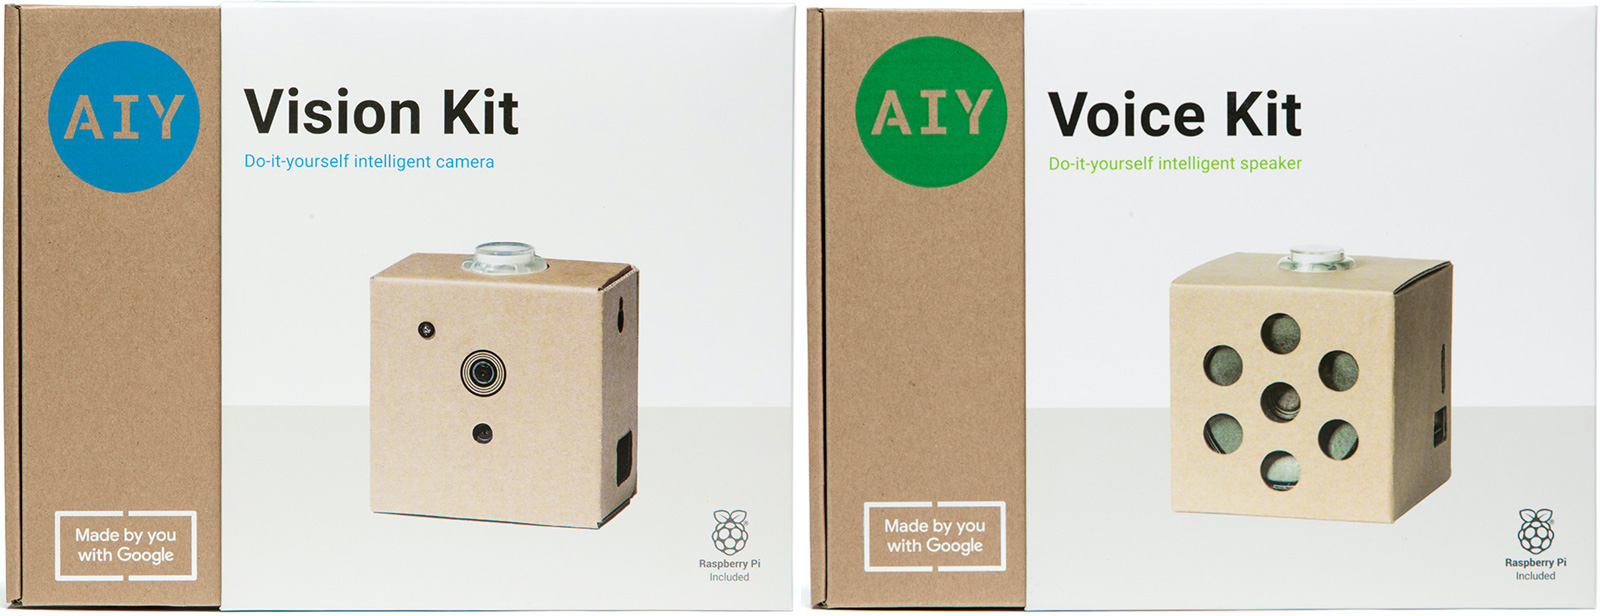 Googles latest do it yourself ai kits include everything you need but its also a realistic price hike youre now paying for everything up front in that sense theyre kinder to parents and anyone else who might not solutioingenieria Gallery